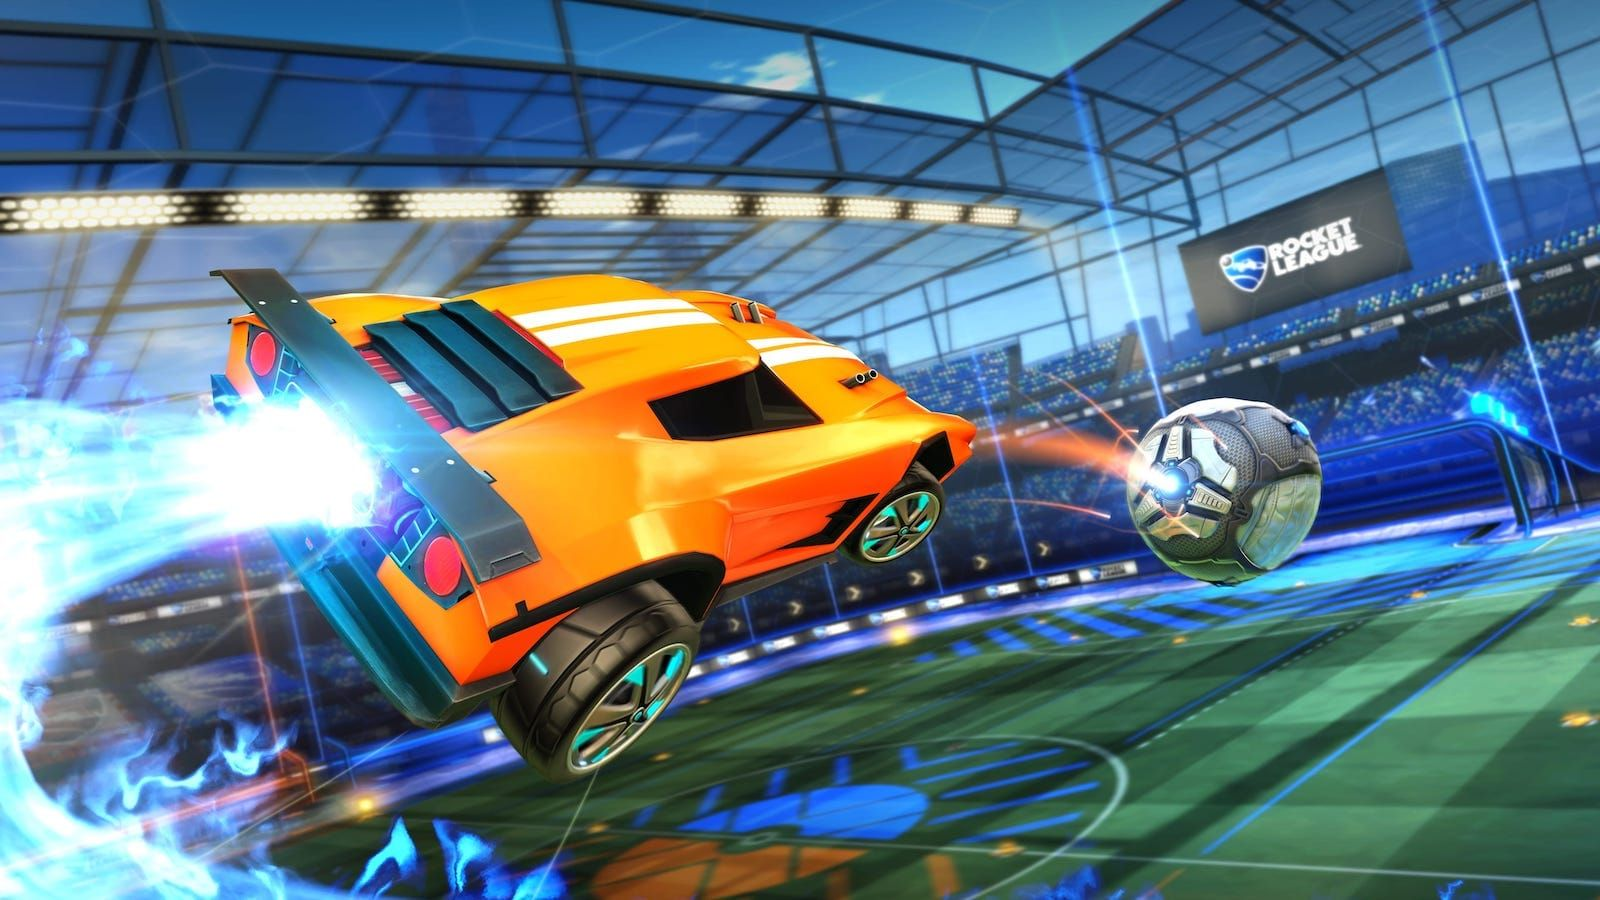 Meet the teams who qualified for Nerd Street's Rocket League Summer Championships